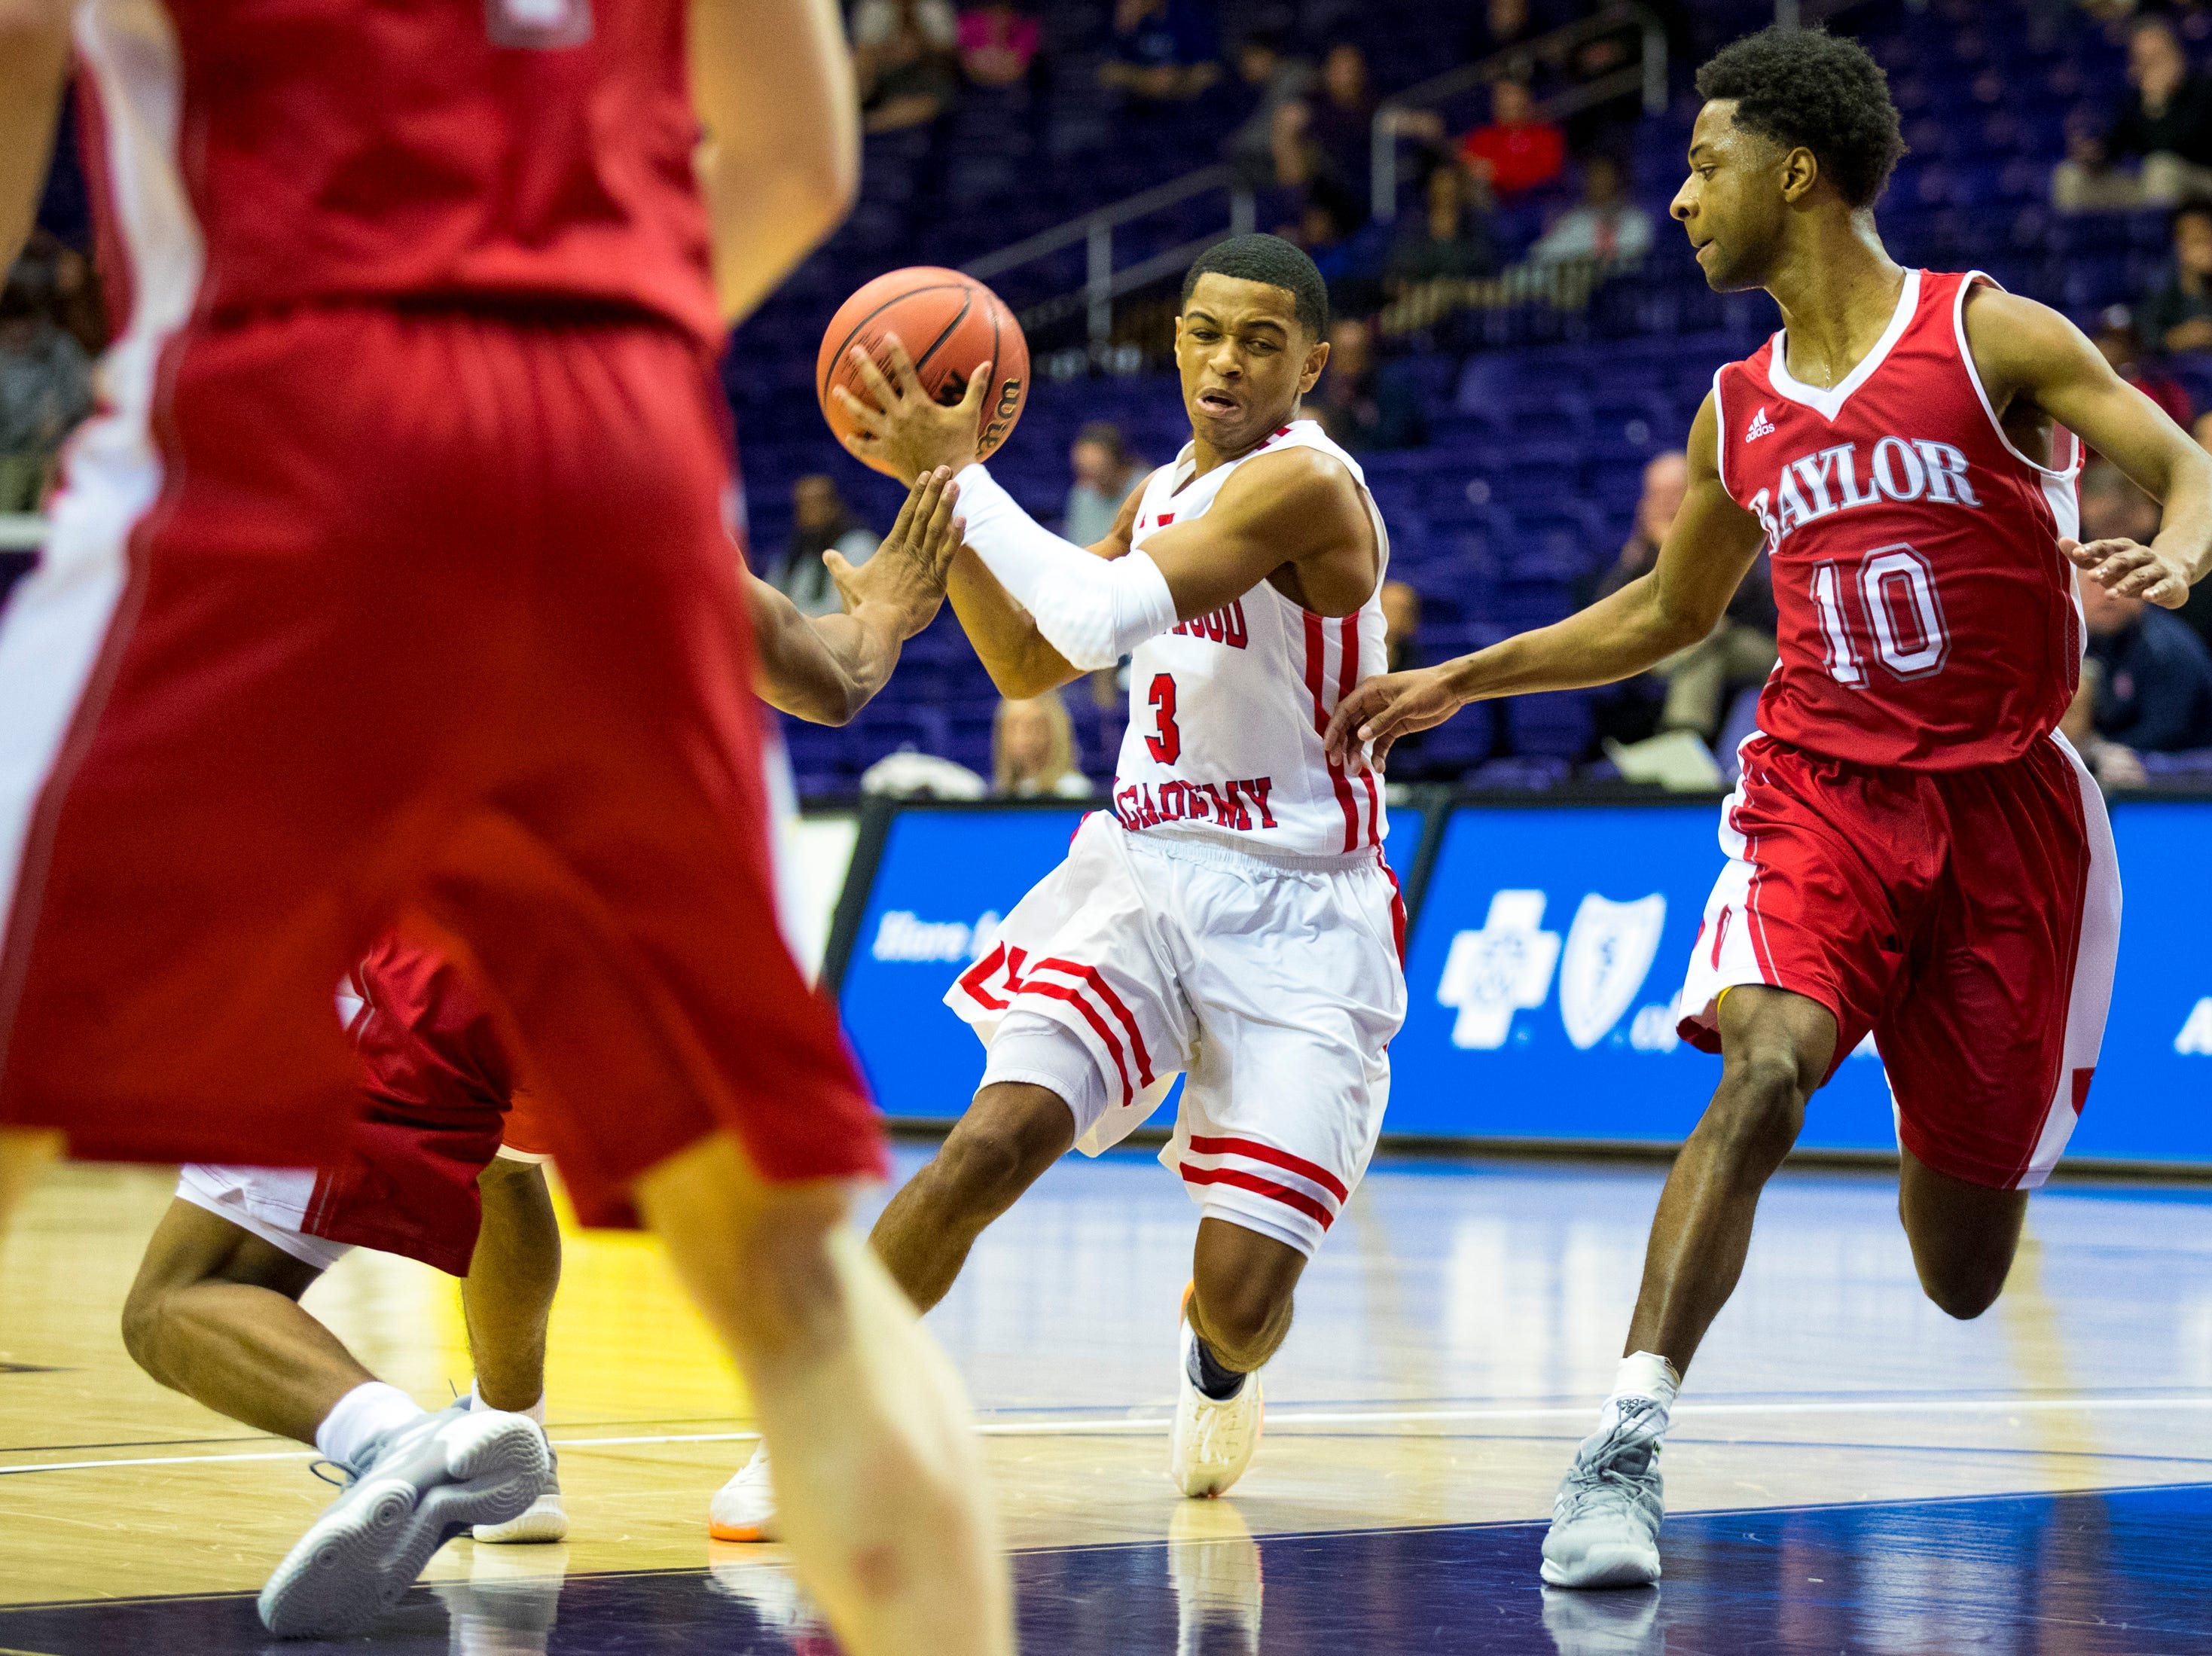 Brentwood Academy's BJ Davis (3) tries to find a lane during Brentwood Academy's game against Baylor in the semifinal round of the TSSAA Division II Class AA State Championships at Lipscomb University's Allen Arena in Nashville on Thursday, Feb. 28, 2019.